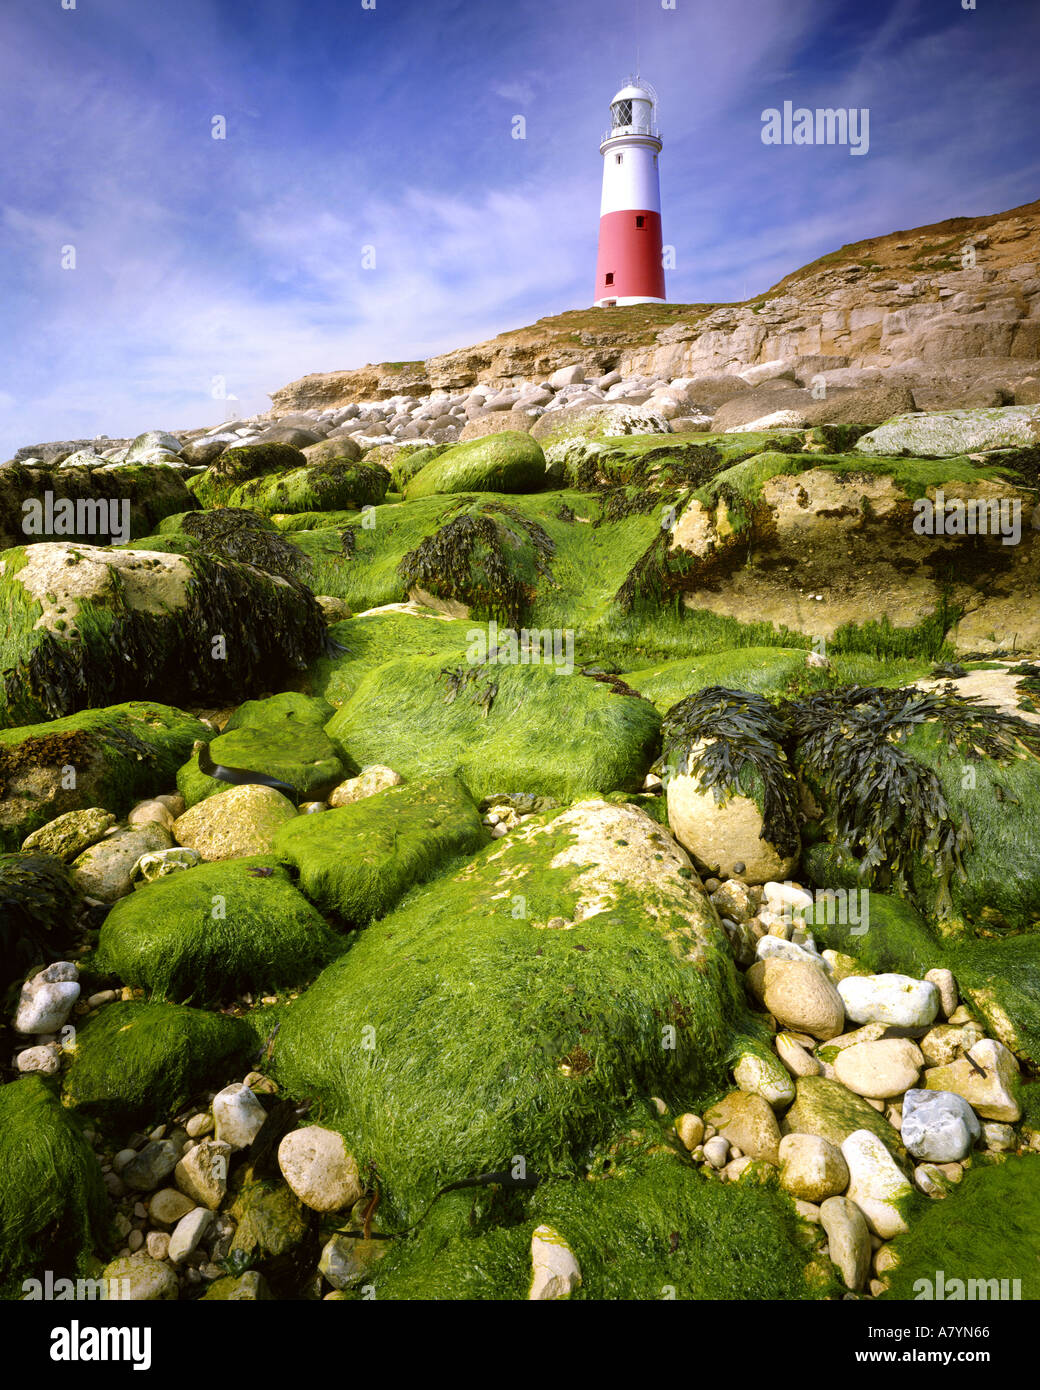 GB - DORSET: Portland Bill Lighthouse - Stock Image